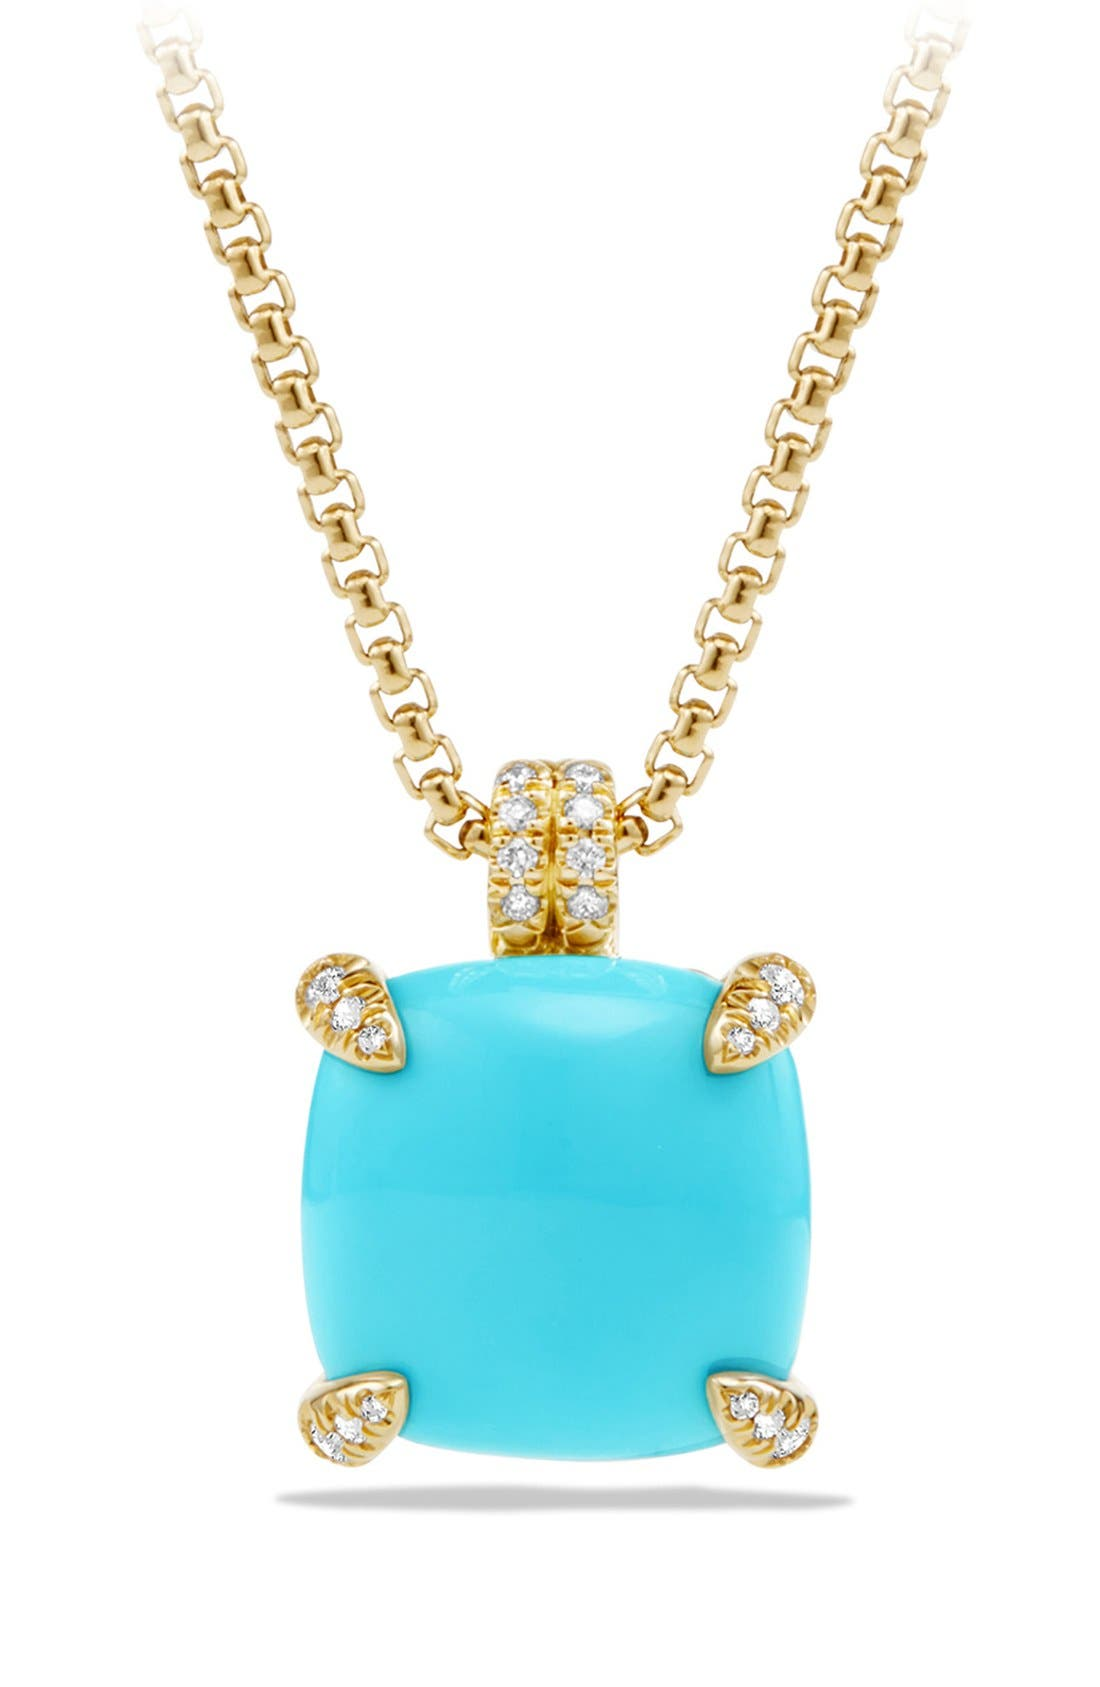 DAVID YURMAN 'Châtelaine' Pendant Necklace with Diamonds in 18K Gold, Main, color, TURQUOISE